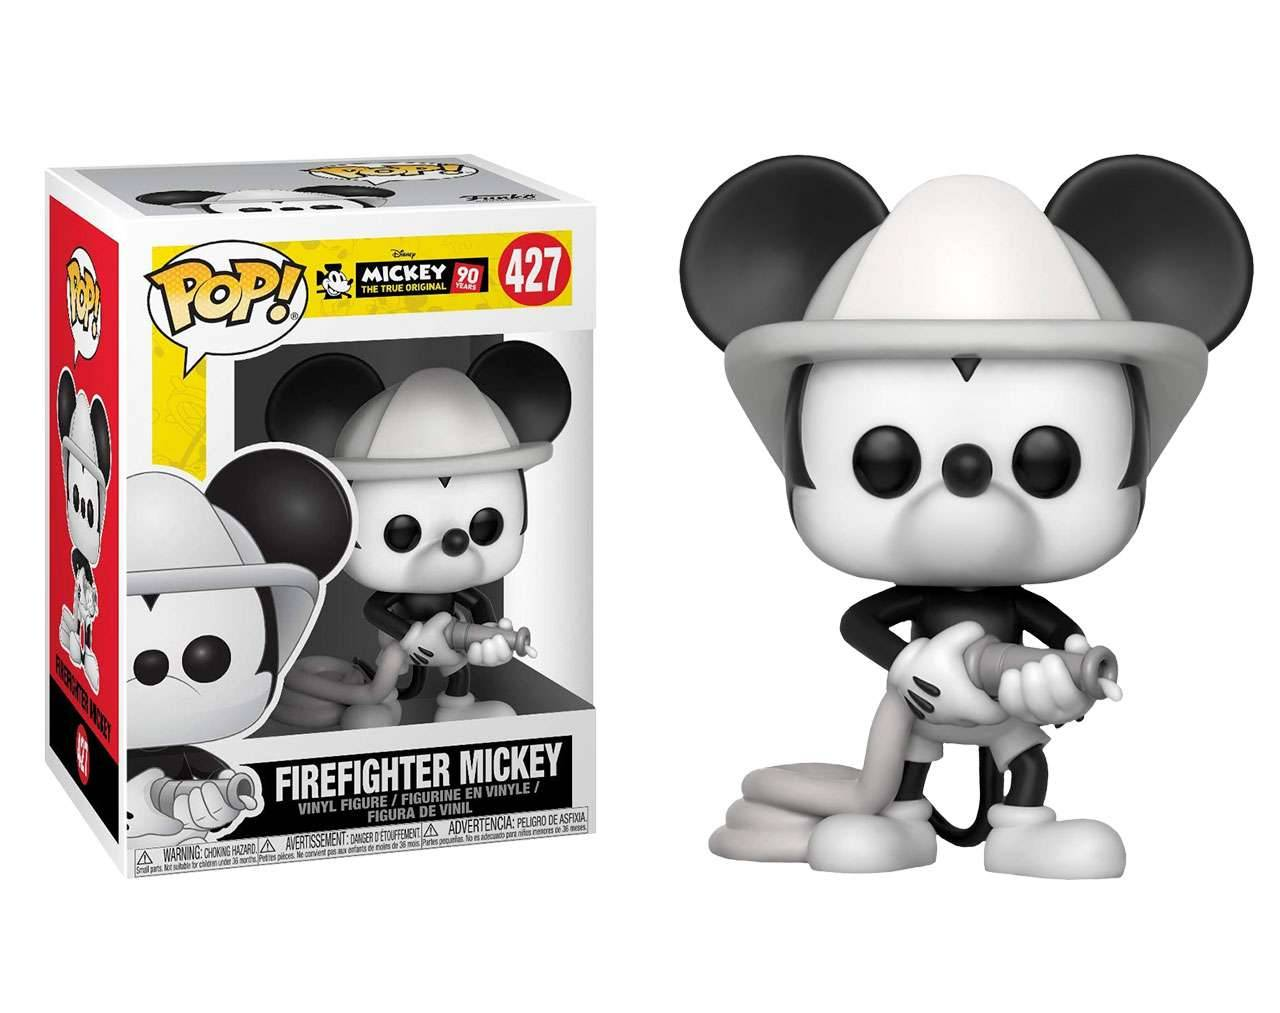 Firefighter Mickey Pop! Vinyl